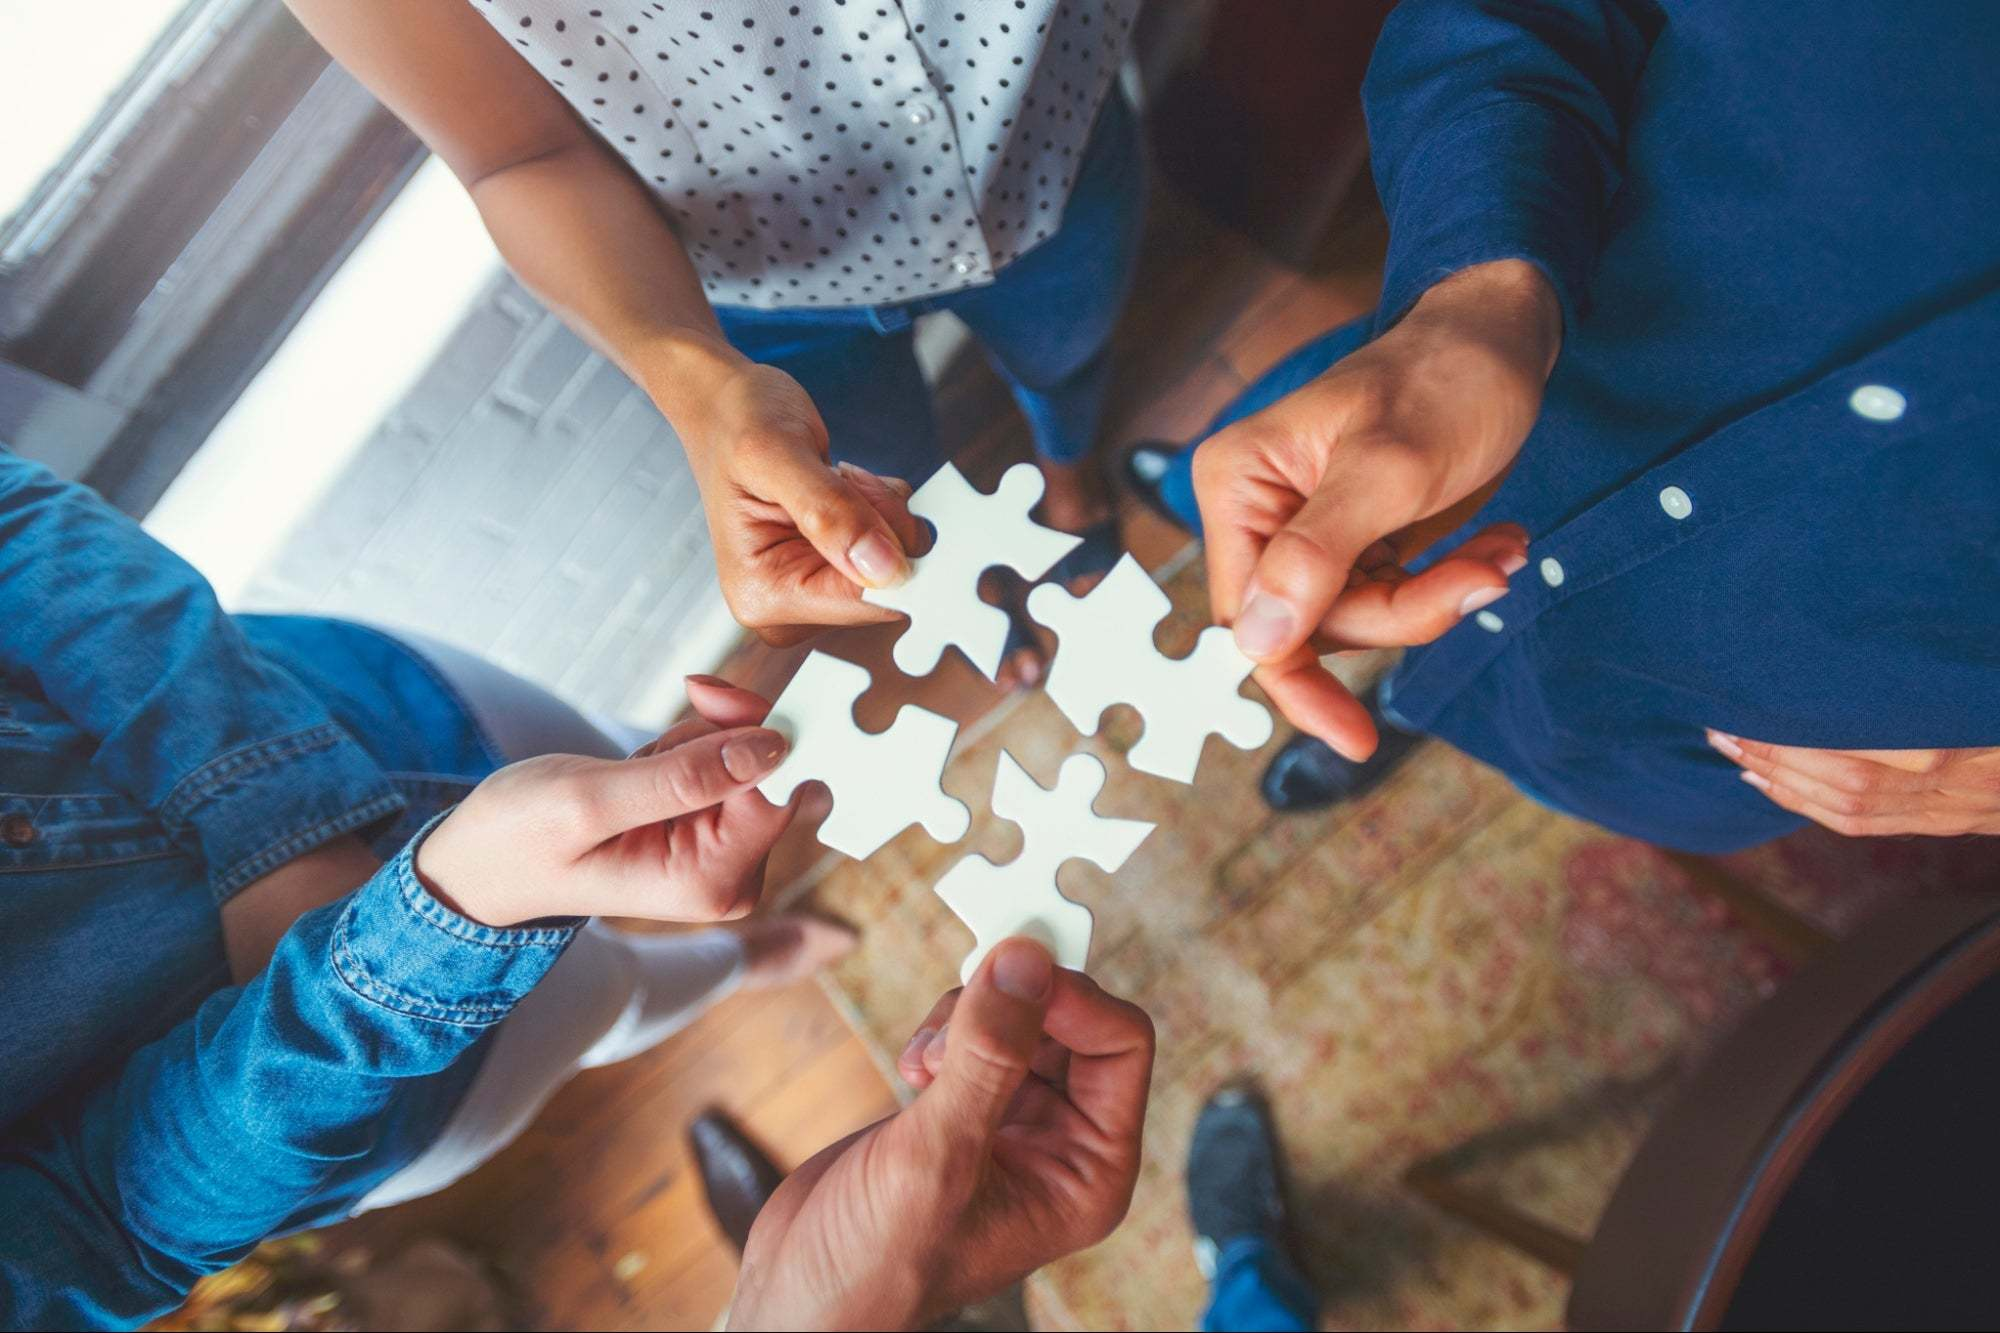 How to Build a Team That's True to Your Values